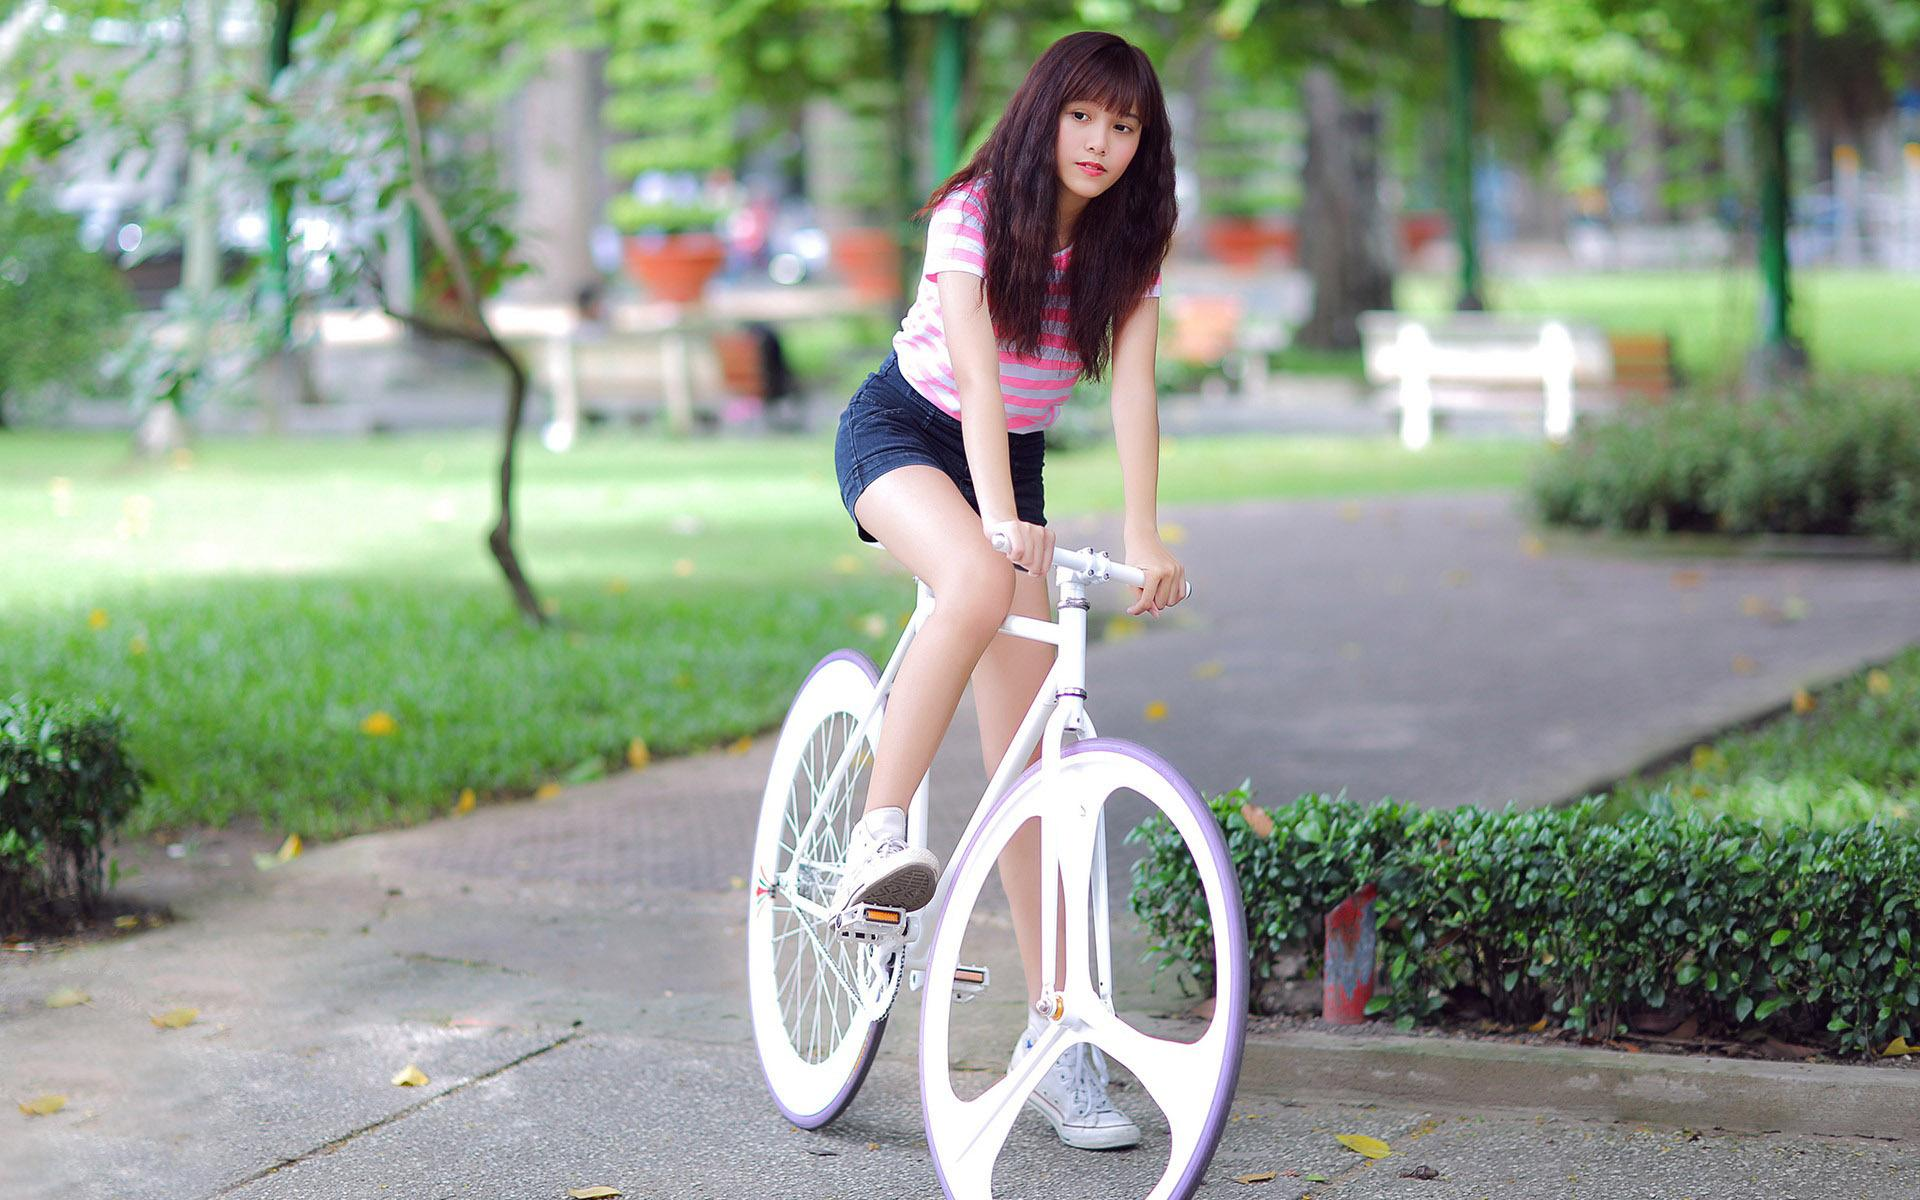 Cute Baby Girl Swing Hd Wallpaper Hd Riding The Bycicle Wallpaper Download Free 147147